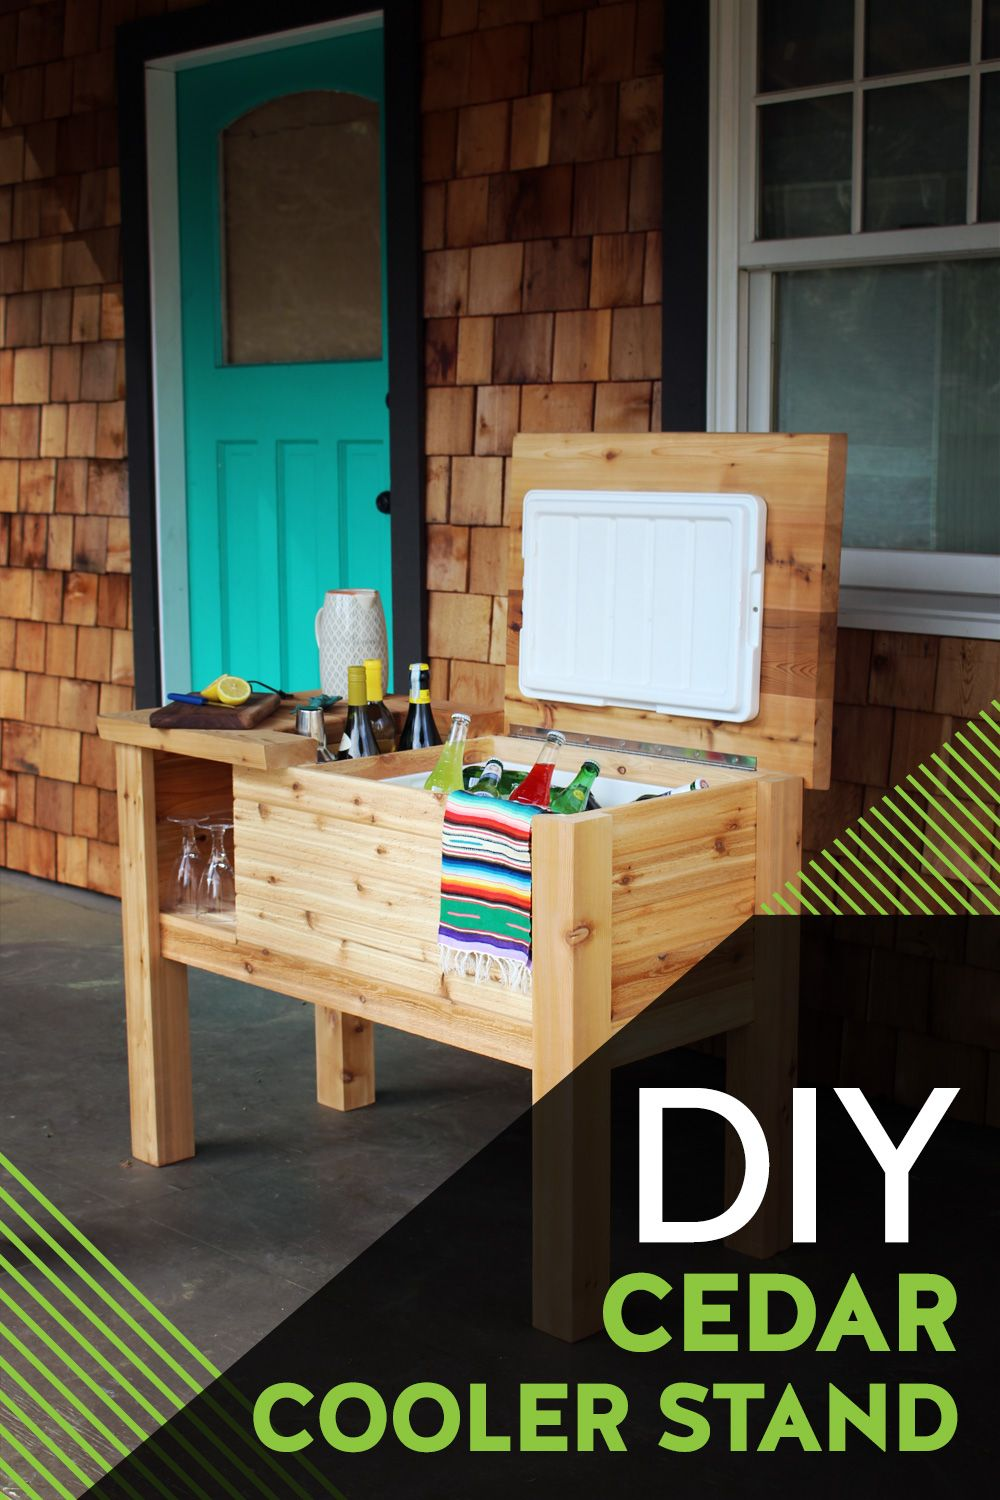 Free Cooler Stand Plans In 2020 Diy Outdoor Decor Outdoor Diy Projects Backyard Diy Projects